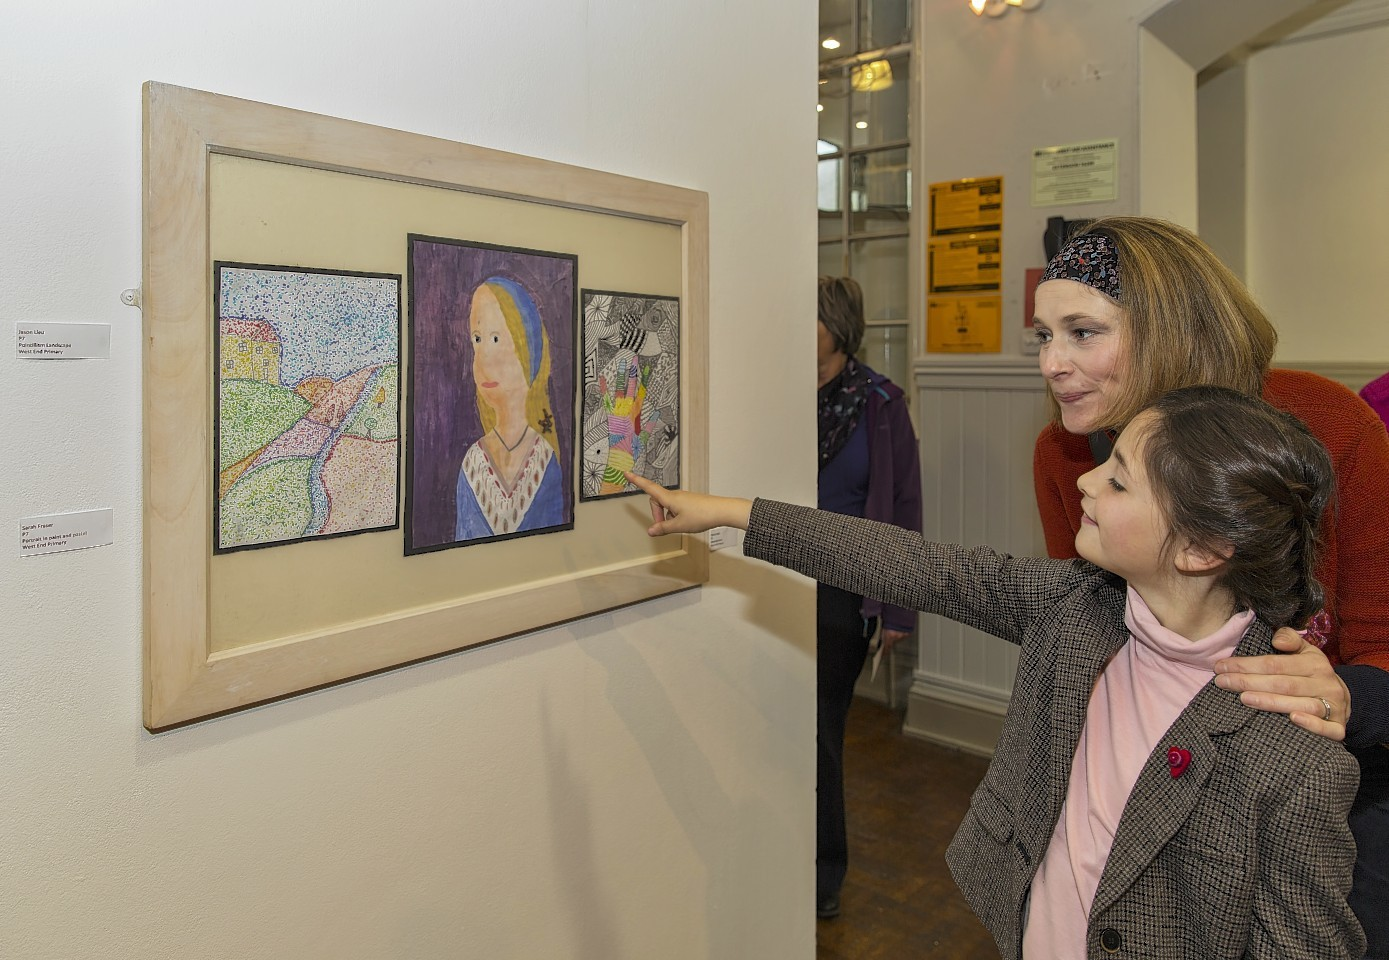 Forres Academy art and design teacher Helen Cole with her daughter Erin admiring the artwork.